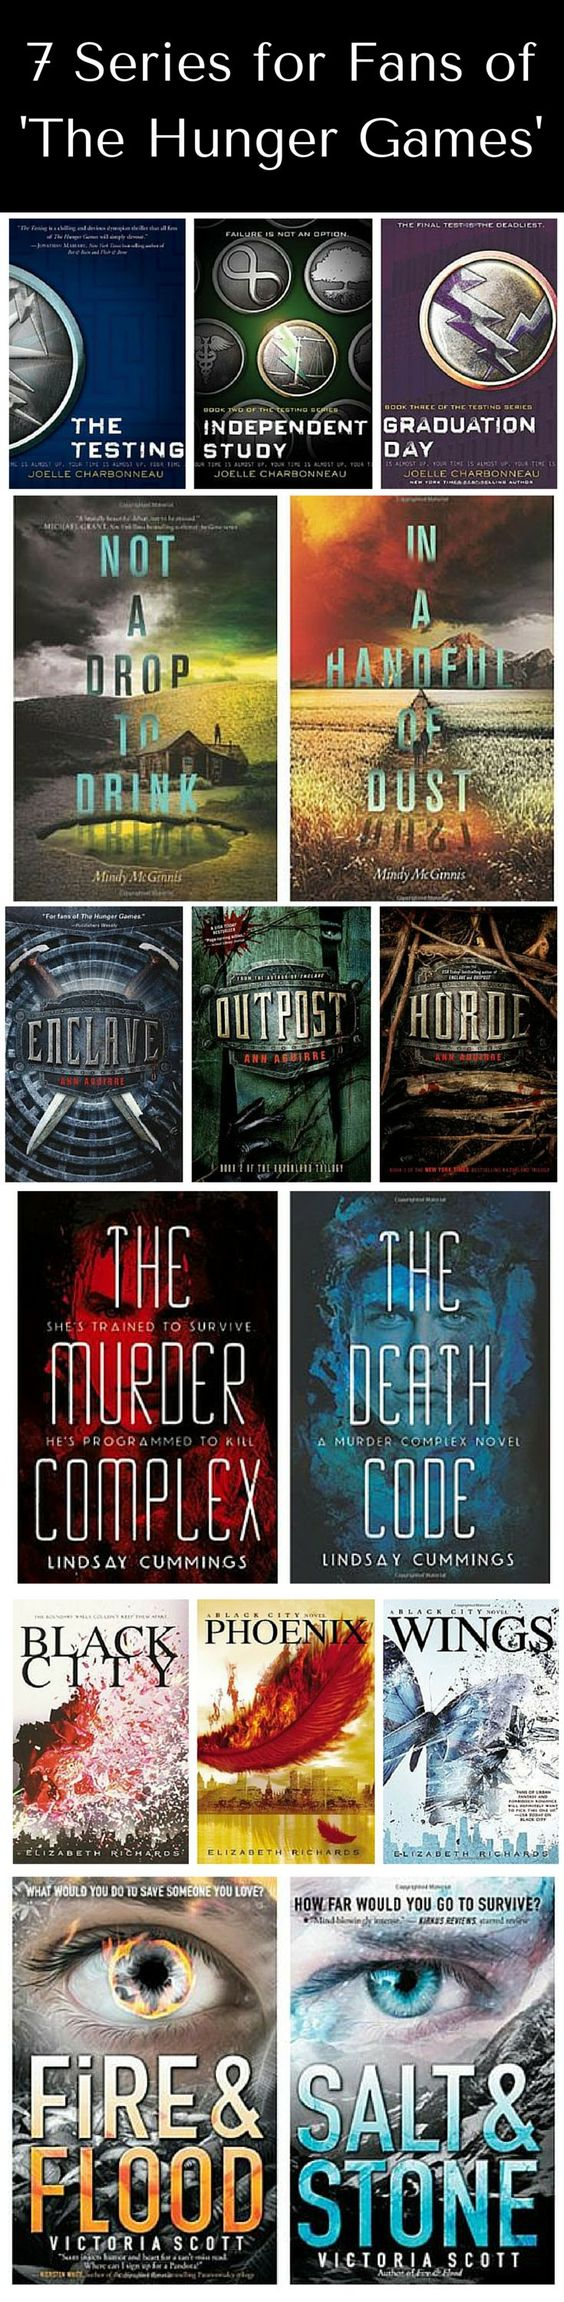 The Hunger Games & 9 Other Books That Continued Publishing ...